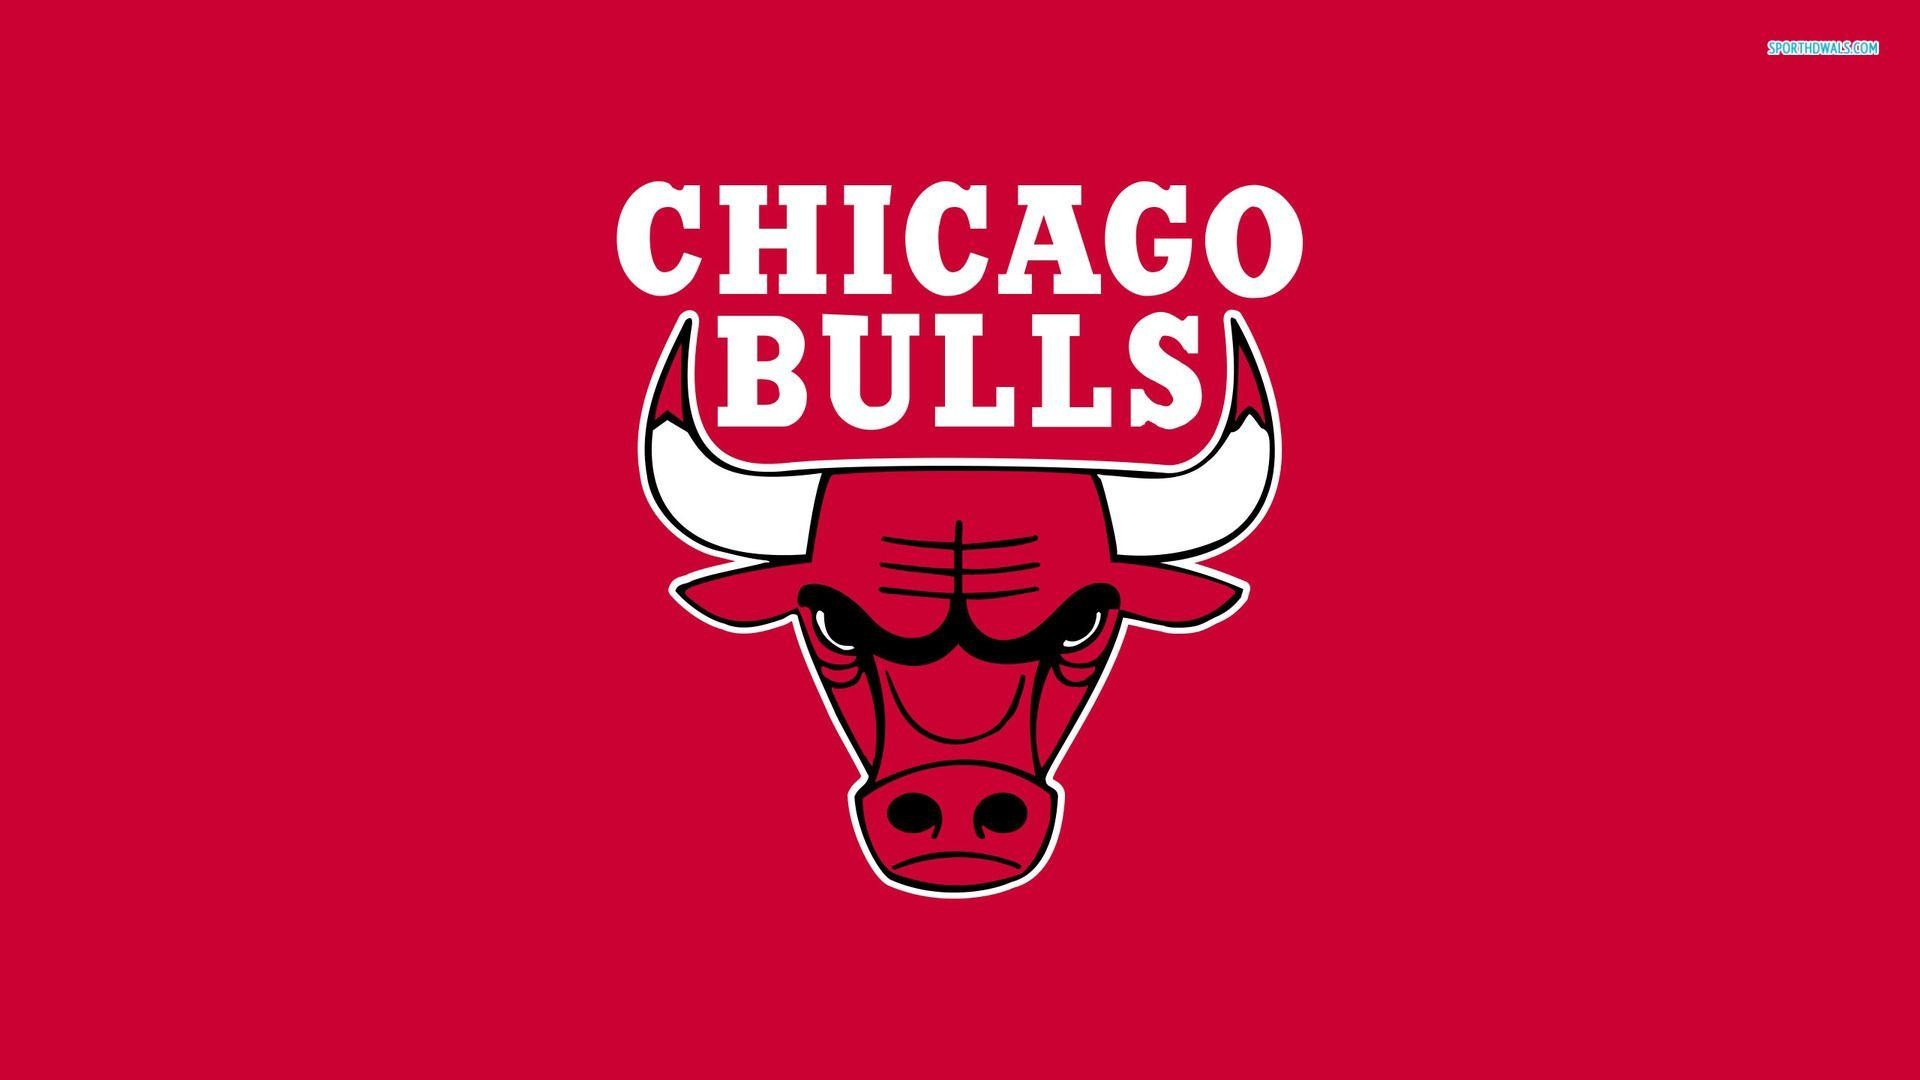 Chicago Bulls wallpapers   Chicago Bulls background – Page 17